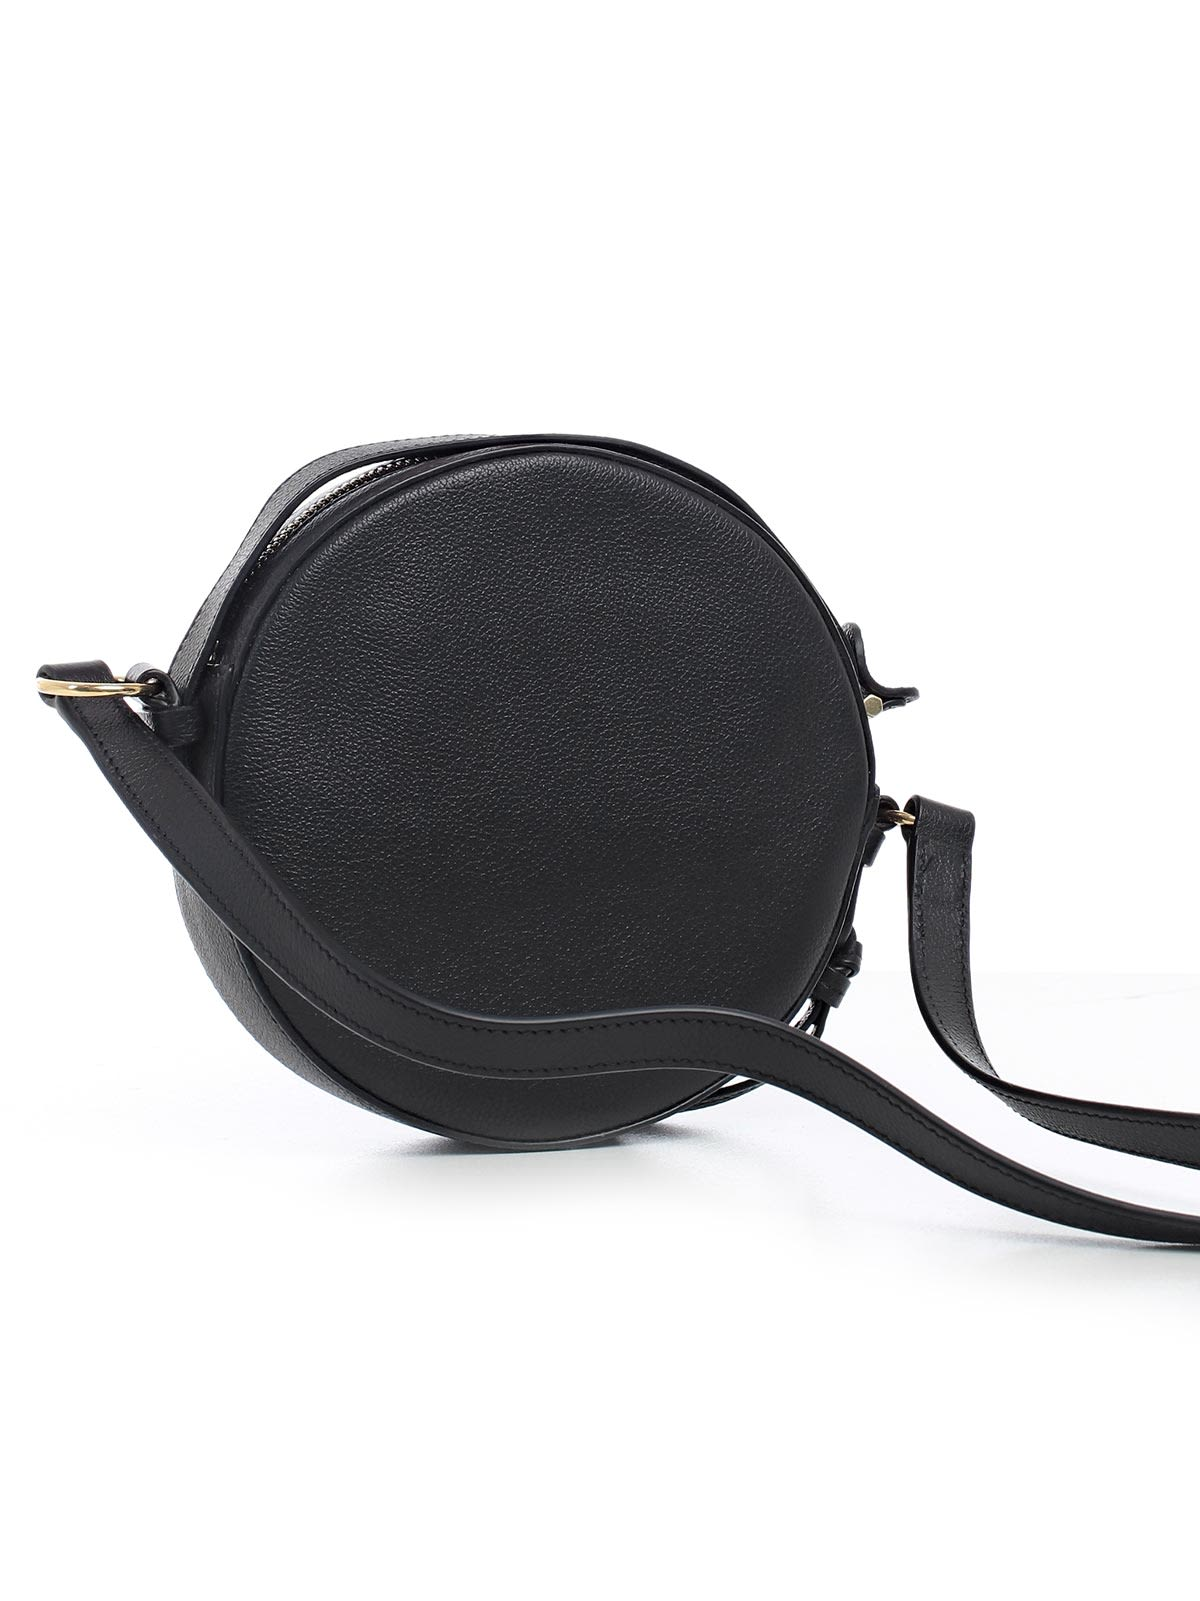 Visit For Sale Rosy round shoulder bag - Black See By Chloé Free Shipping Marketable Where To Buy Low Price For Sale Finishline Buy Cheap Sale kaTLFE